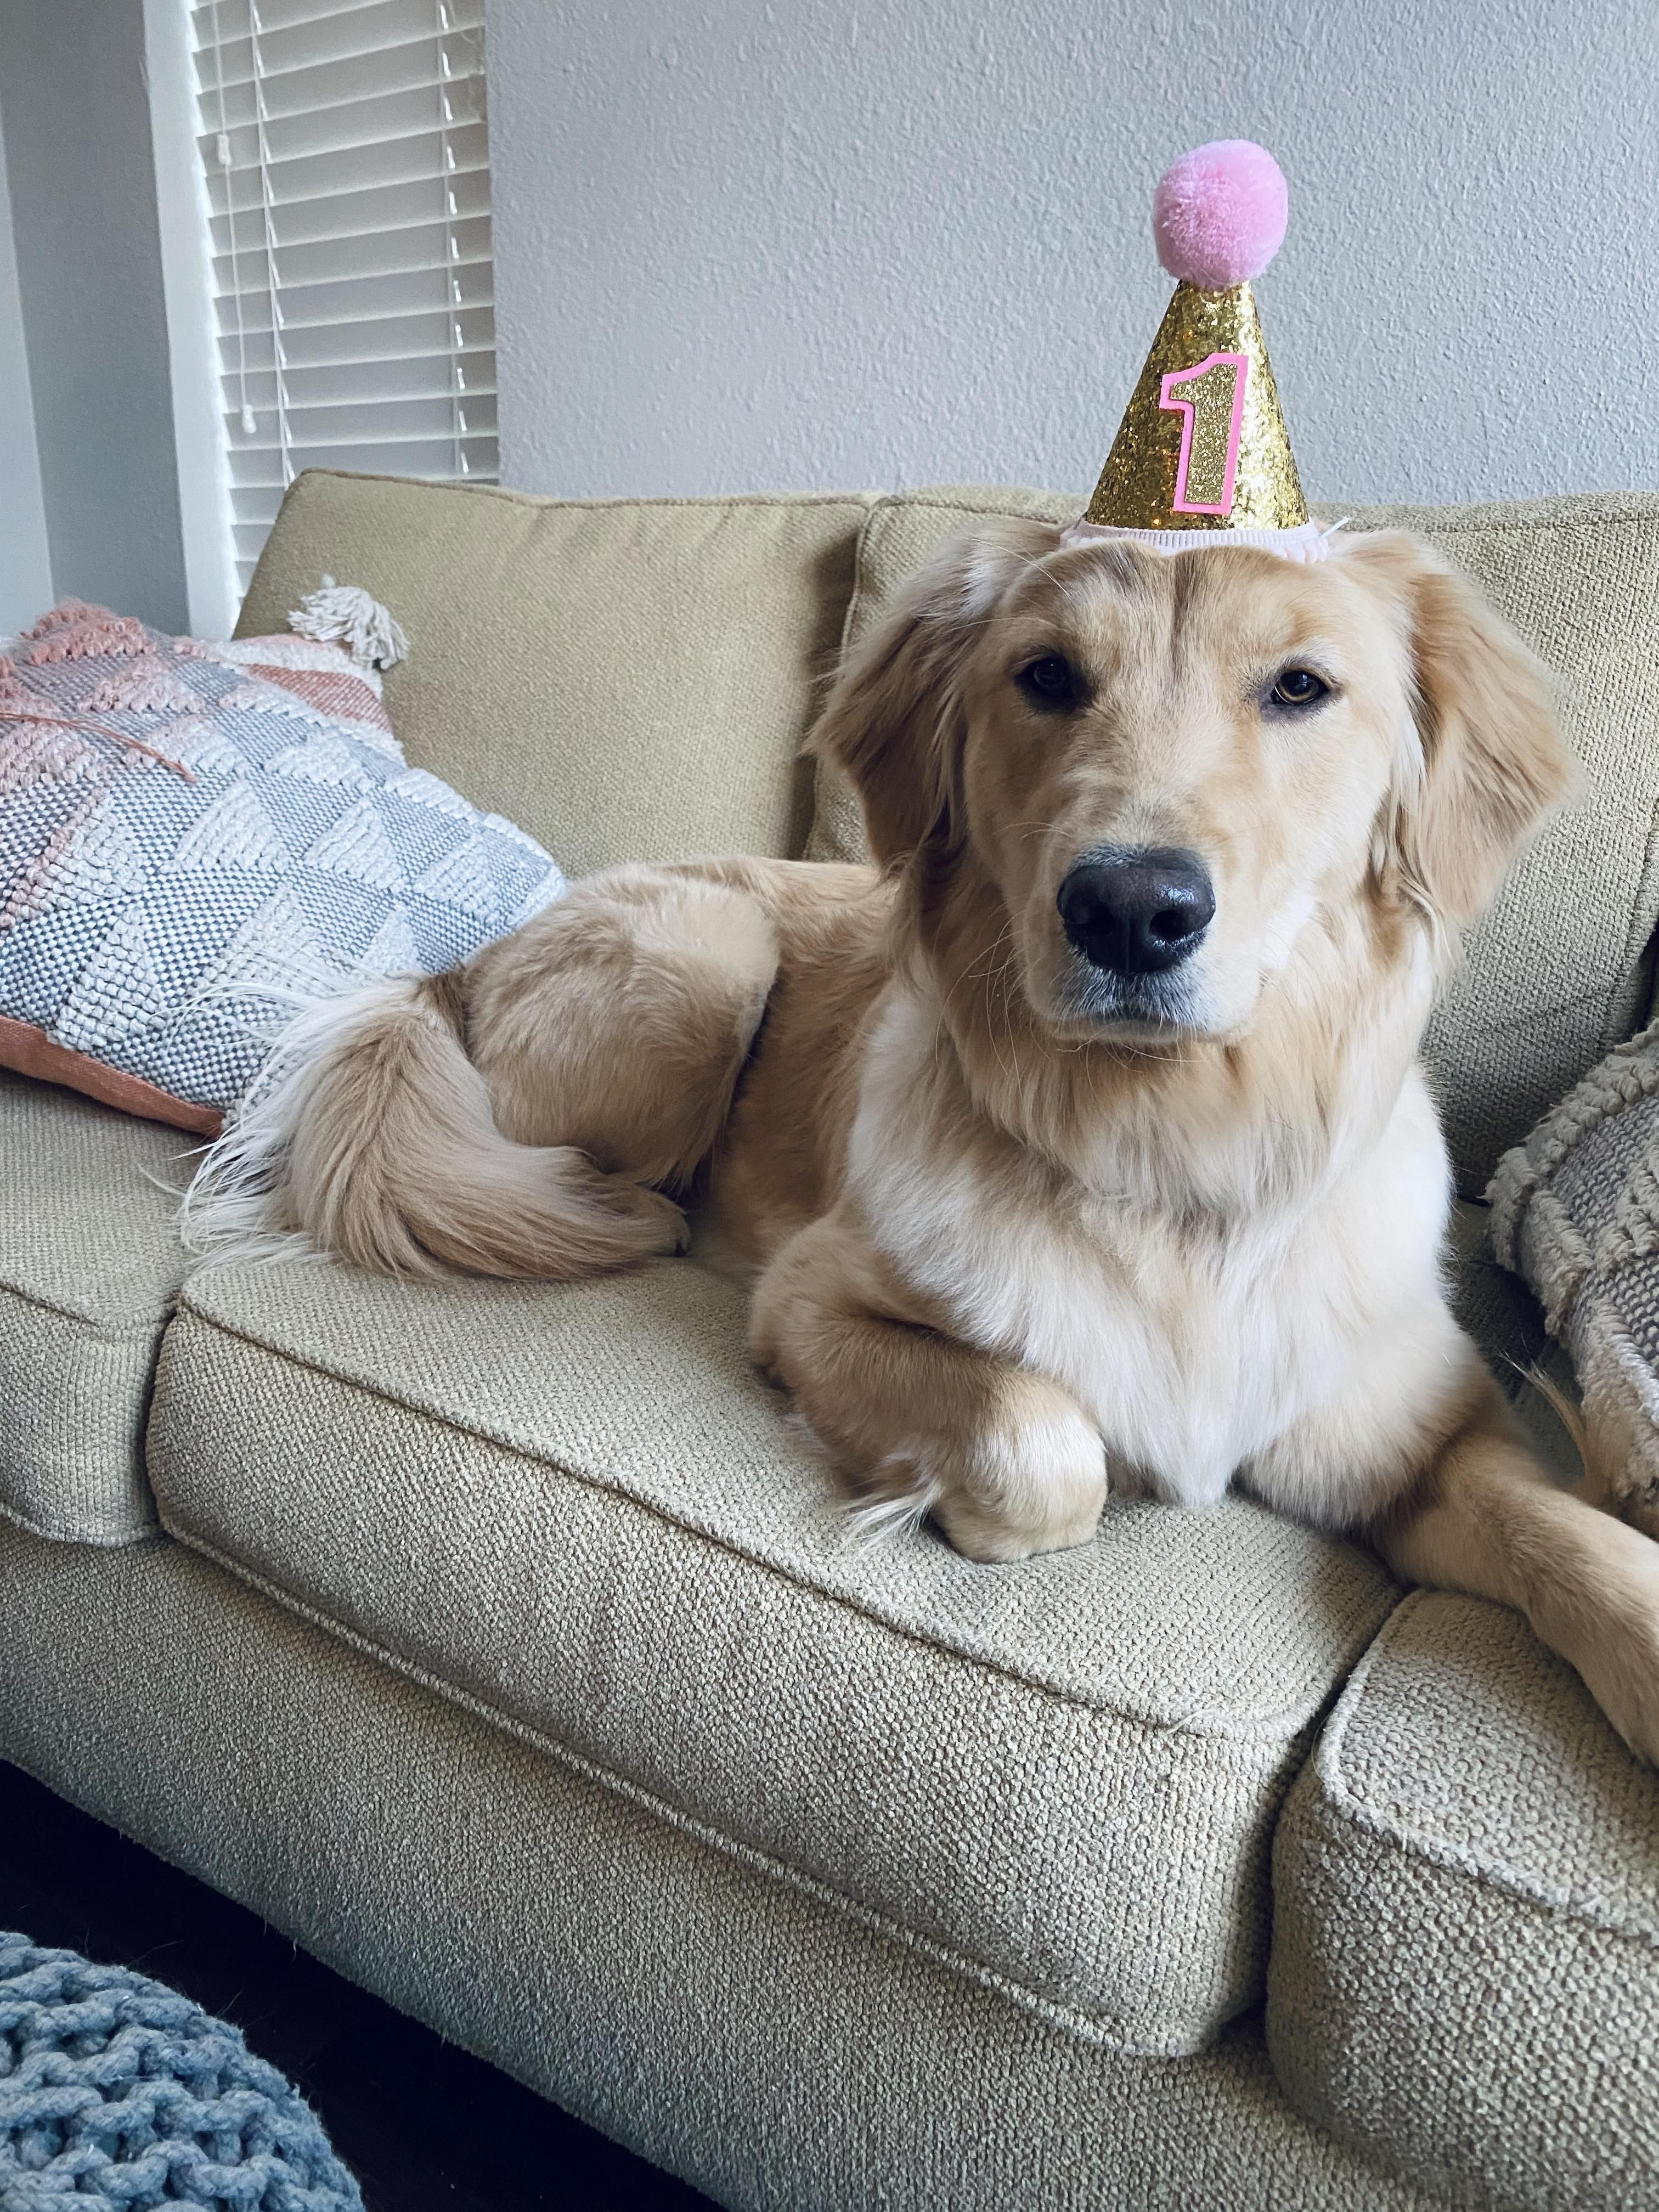 Stella Is One Year Old Today In 2020 Golden Retriever Birthday Golden Retriever Dogs Golden Retriever